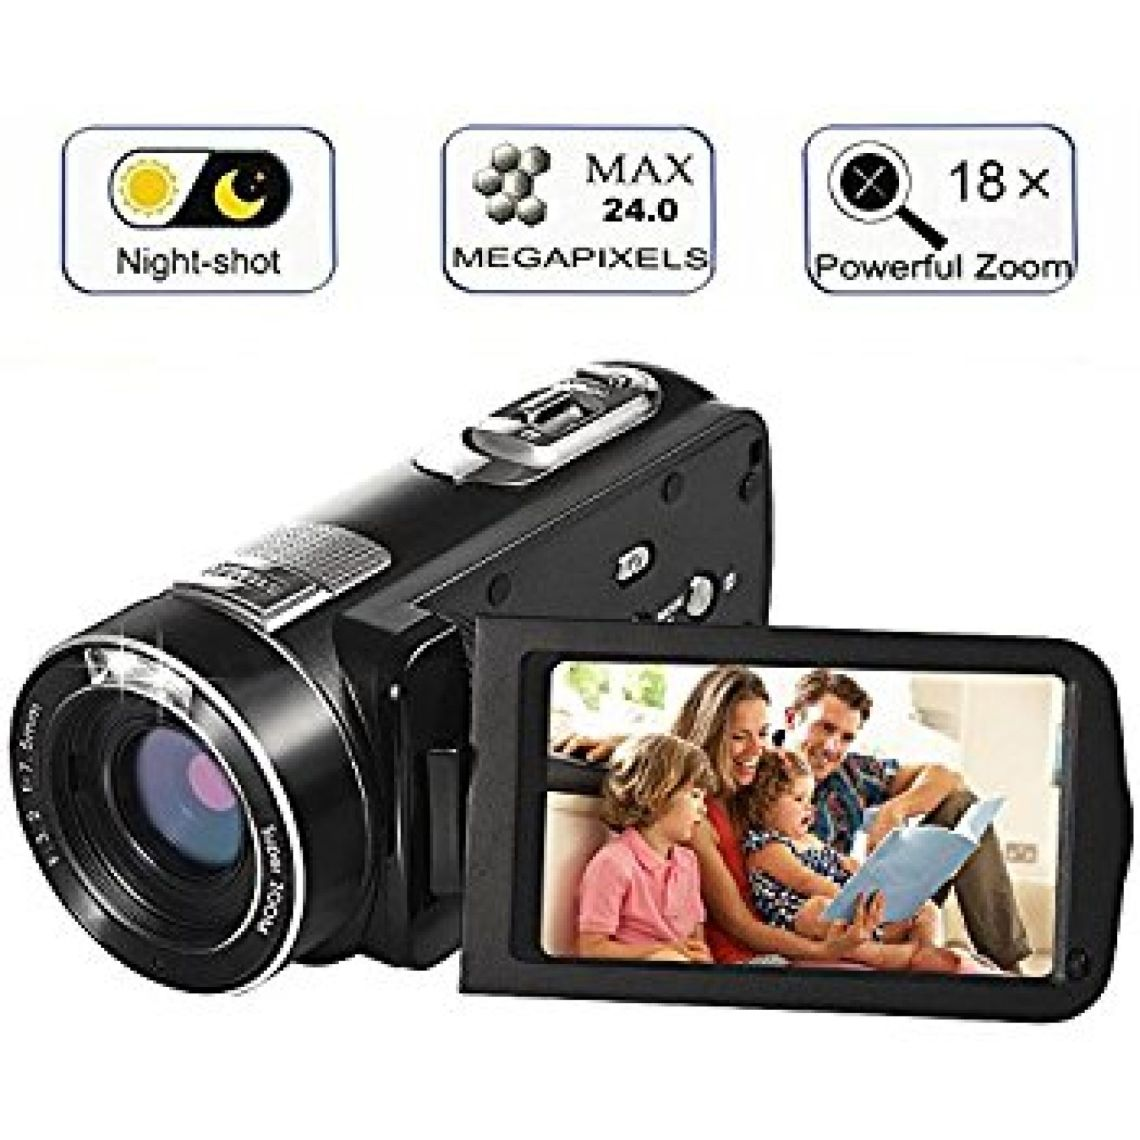 Amazon.com : Digital Camcorder, Besteker 720P HD Video Camcorder 16X Zoom 16MP Video Camera with 2.7 inches TFT LCD Screen Support 270 Degree Rotation : Camera & Photo